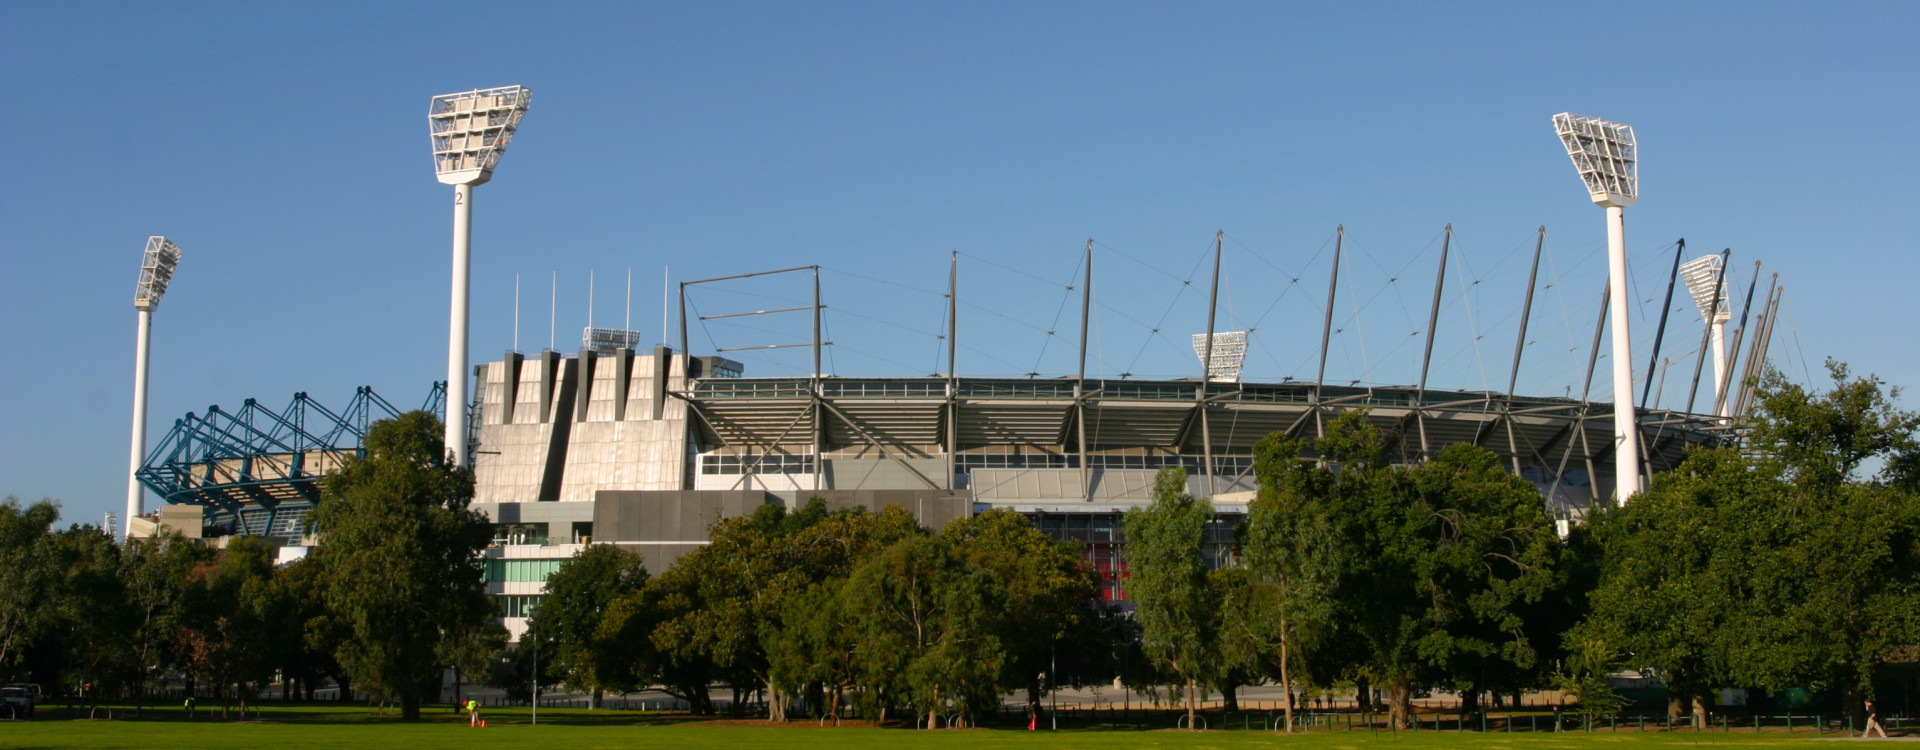 Melbourne is known as Australia's sporting capitol. The MCG and Australian Open are at your doorstep